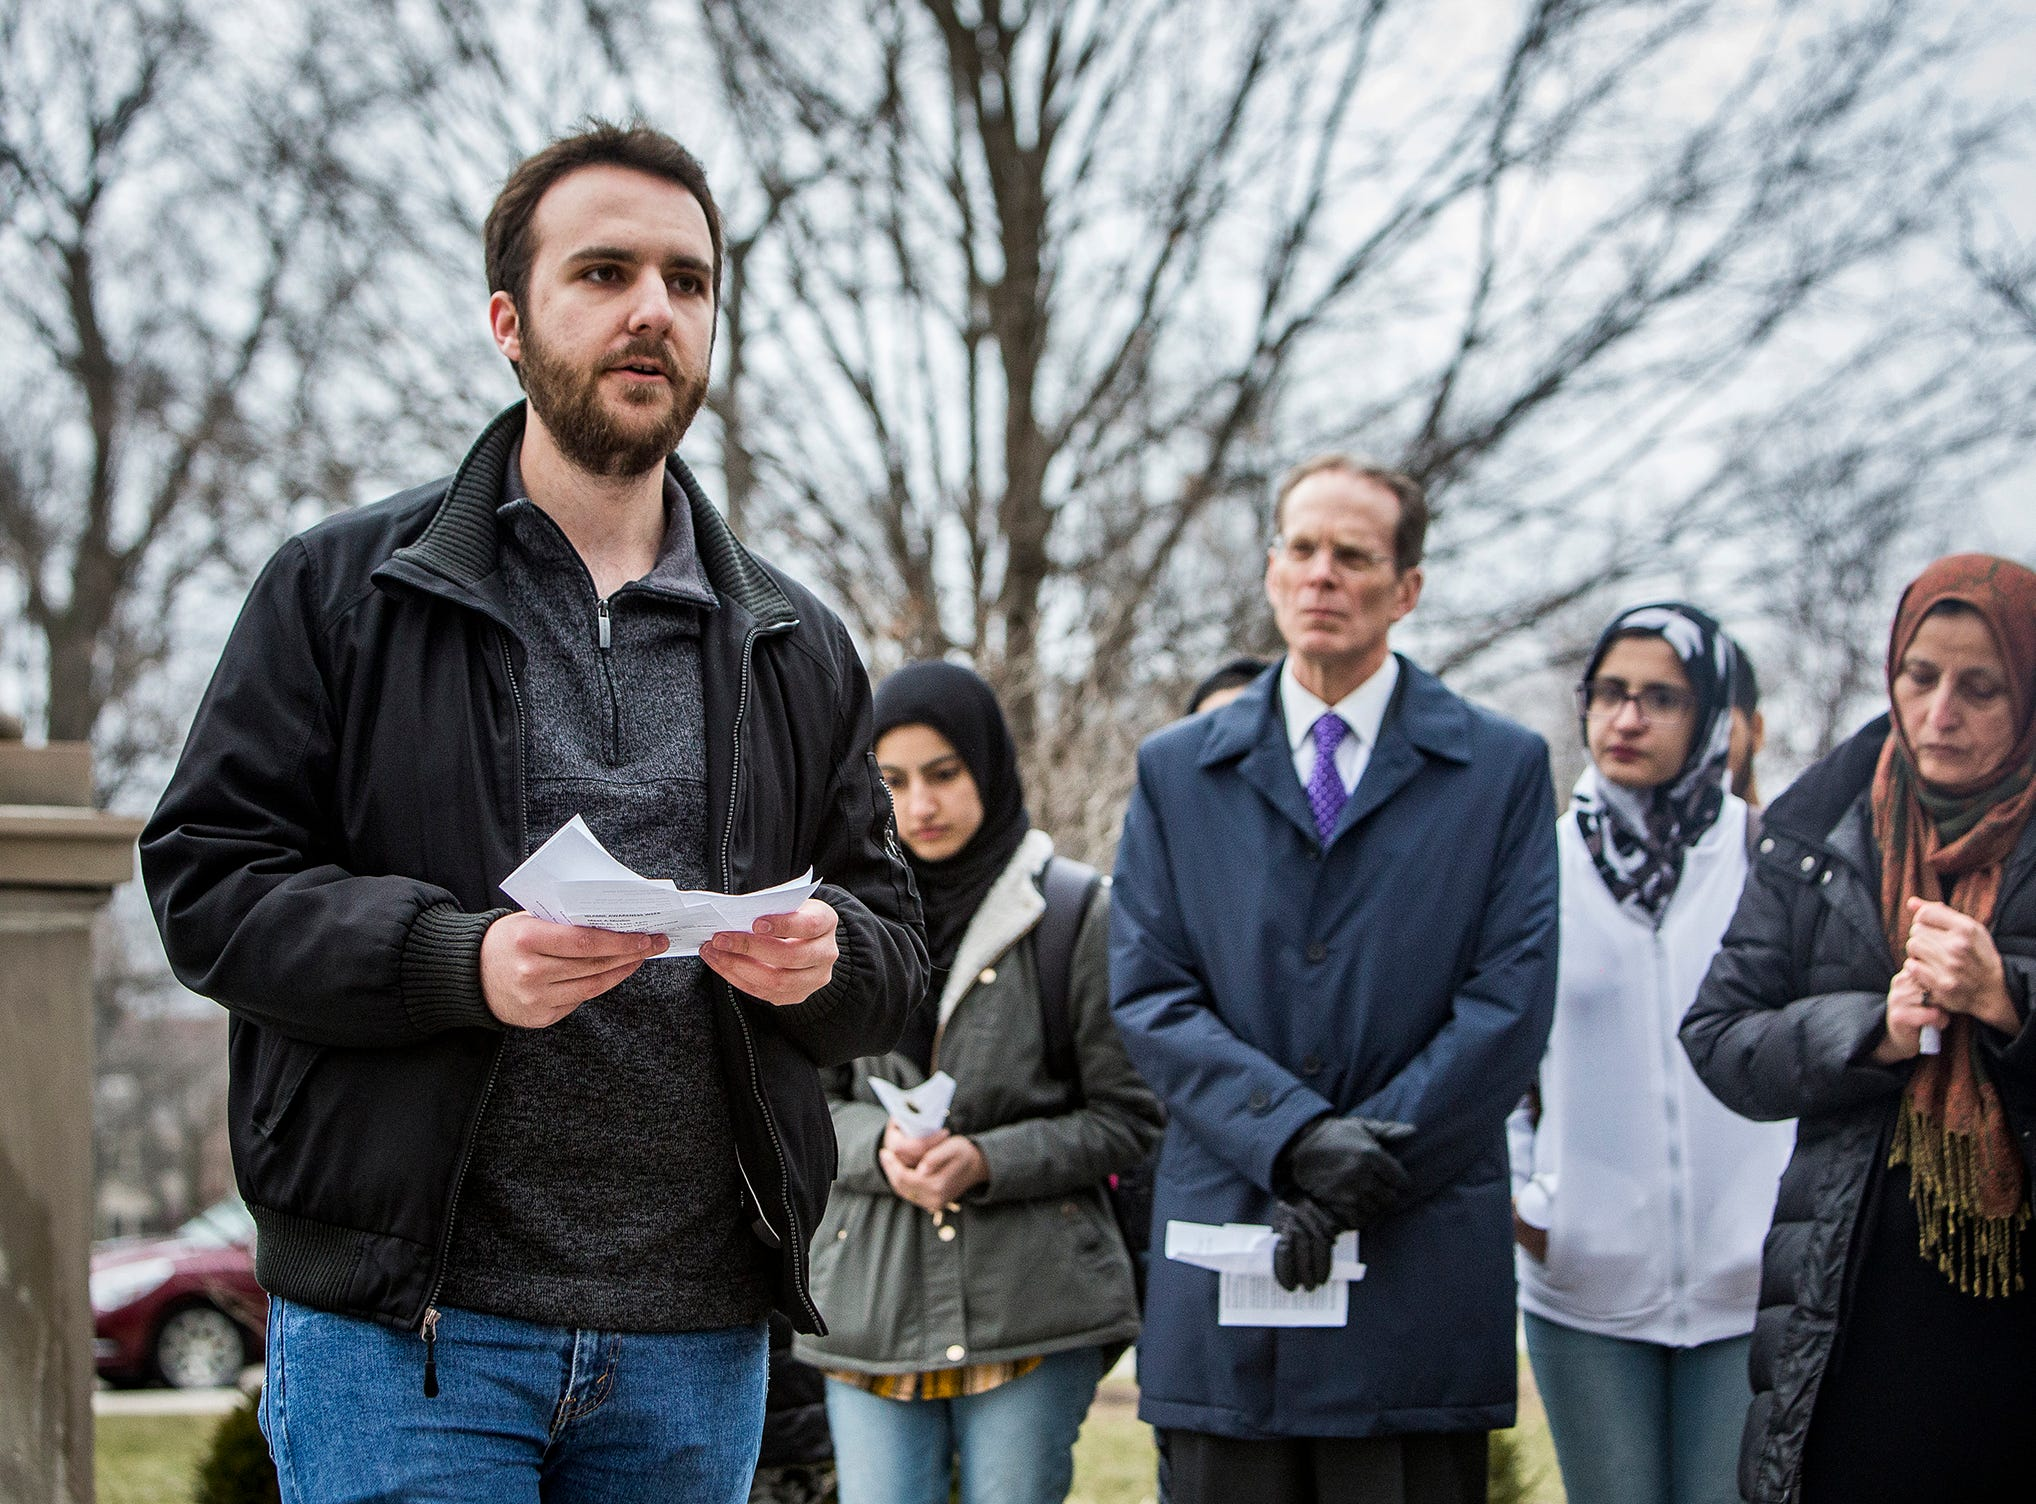 Mendim Akiti of Ball State's Muslim Student Association speaks during a vigil for the Christchurch, New Zealand shooting victims in front of the university's Beneficence statue Thursday afternoon.